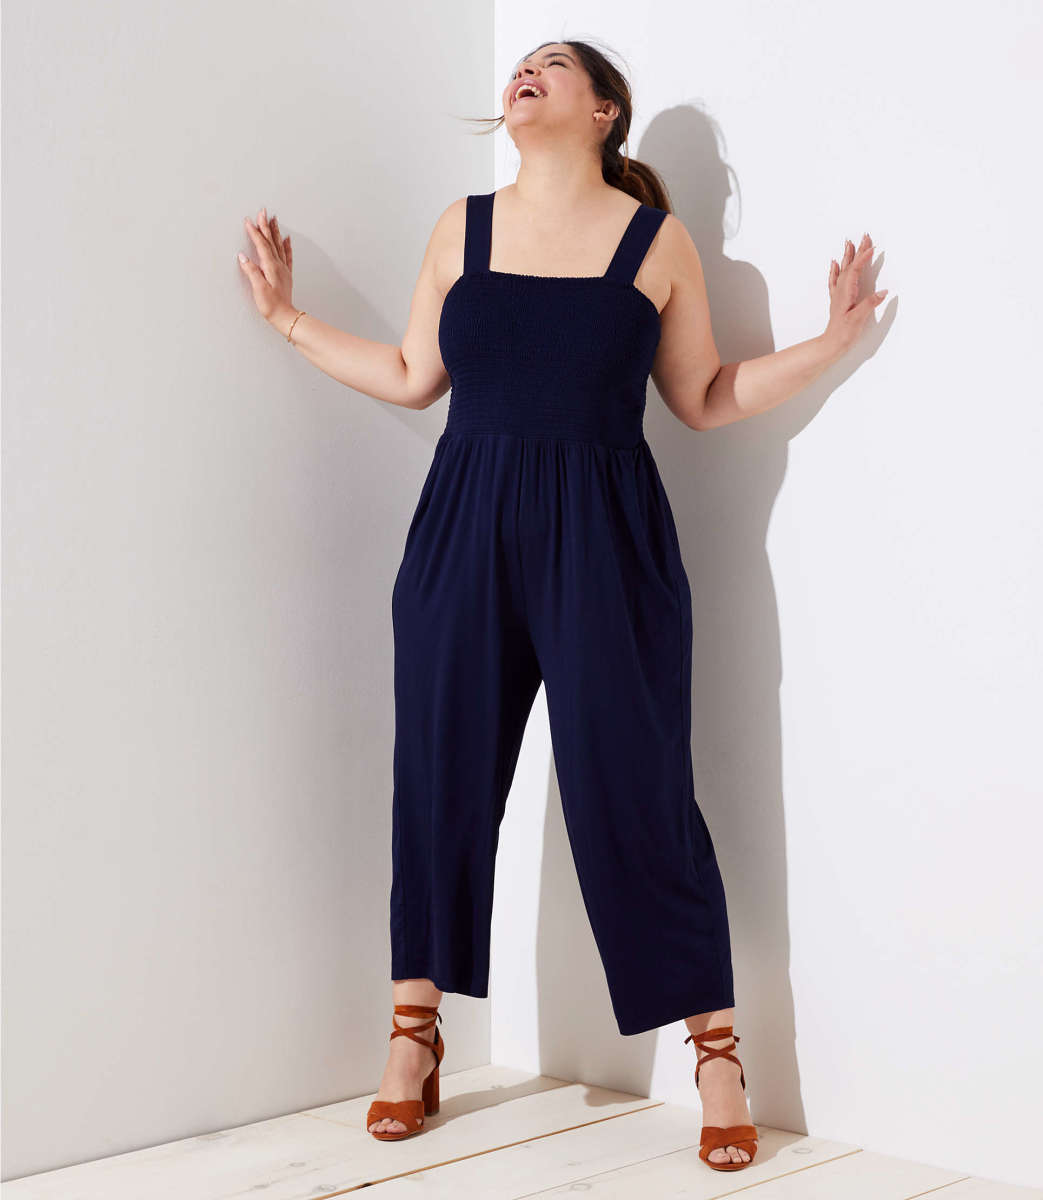 Smocked Wide Leg Jumpsuit, $89.50, available at Loft Plus.